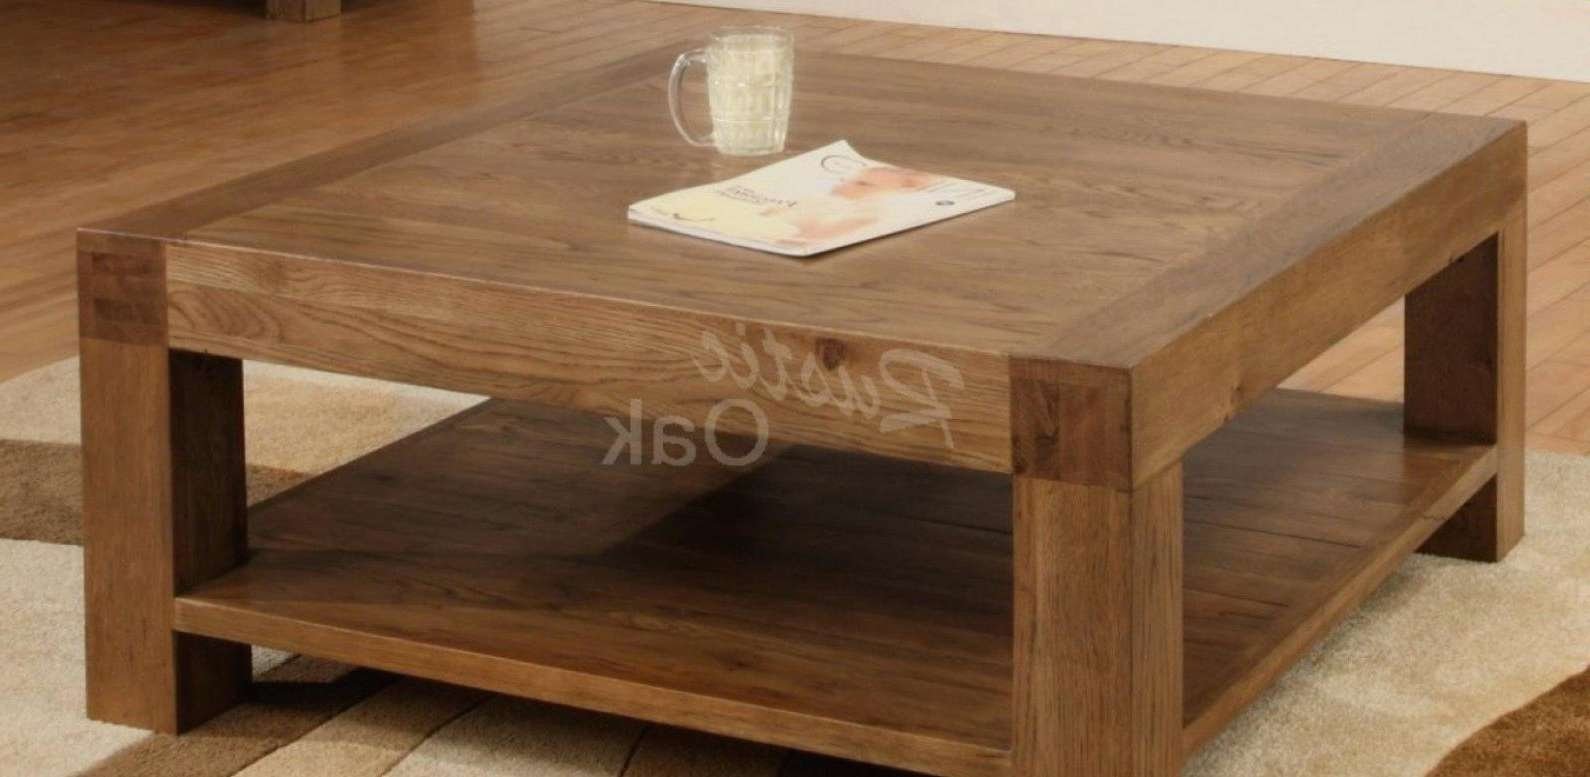 Coffee Tables : Oval Wood Coffee Table Wooden Sets Dark Cherry With Recent Chunky Wood Coffee Tables (View 20 of 20)